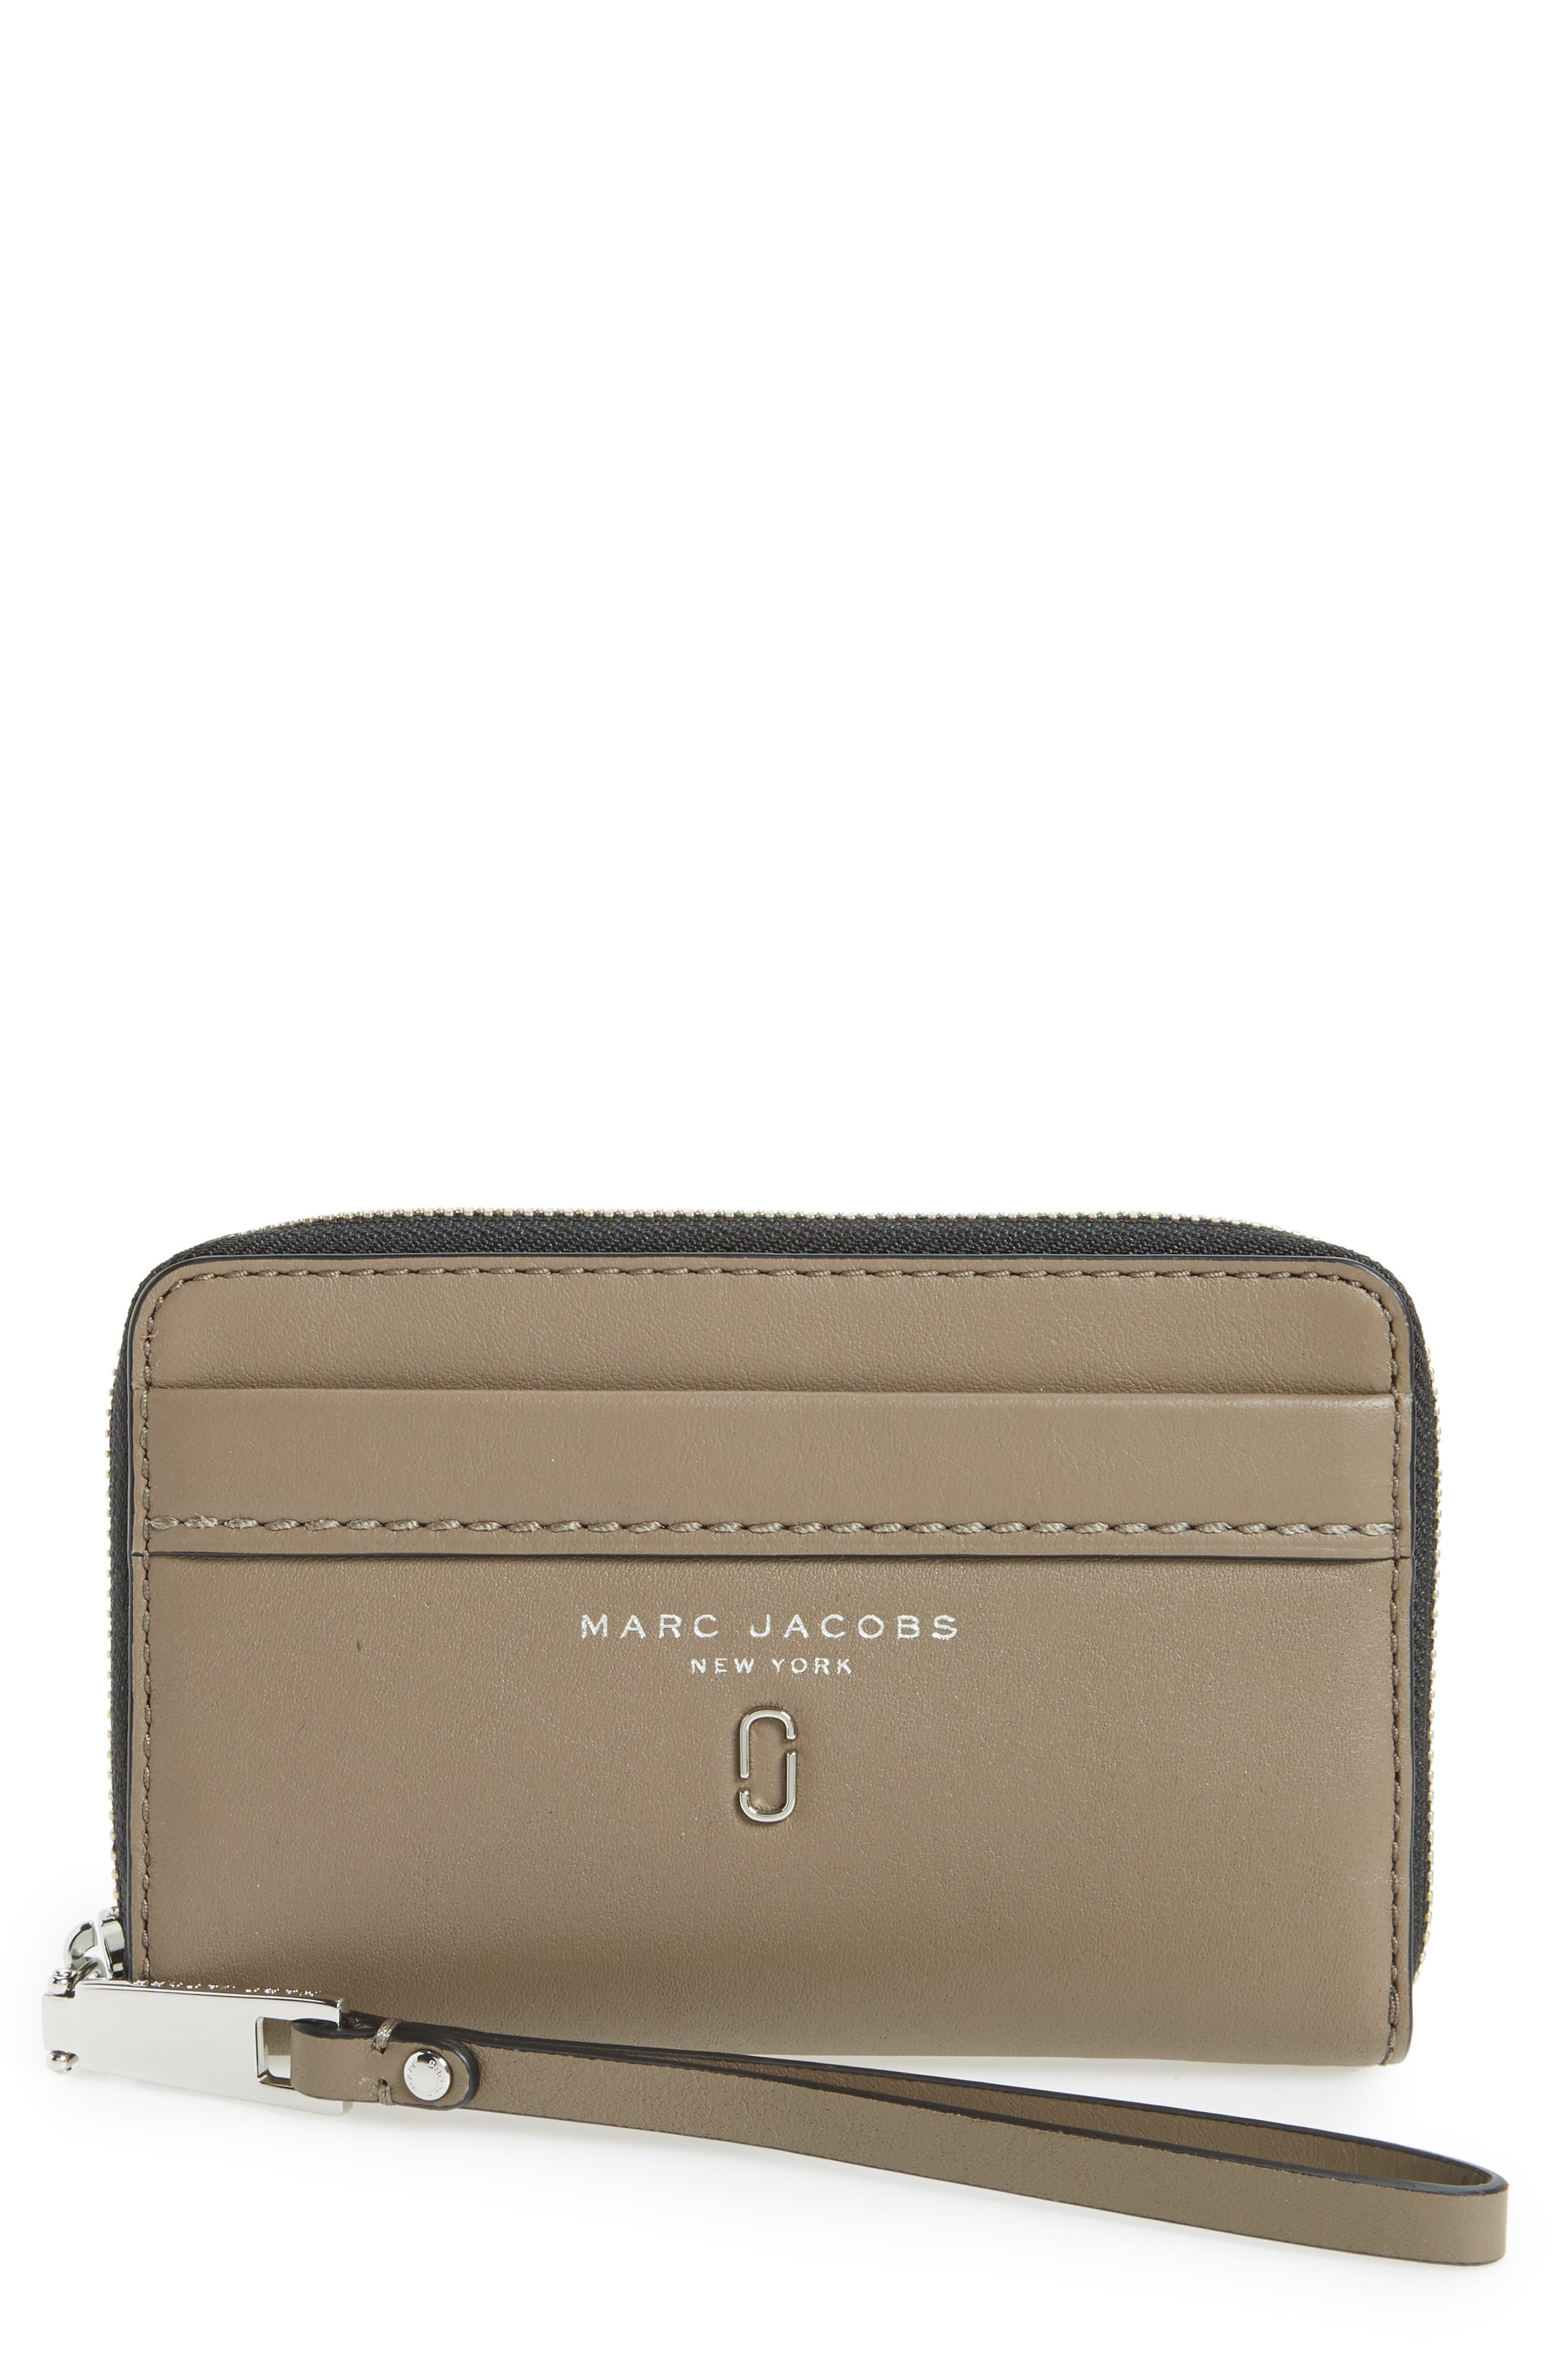 MARC JACOBS Tied Up Leather Phone Wristlet